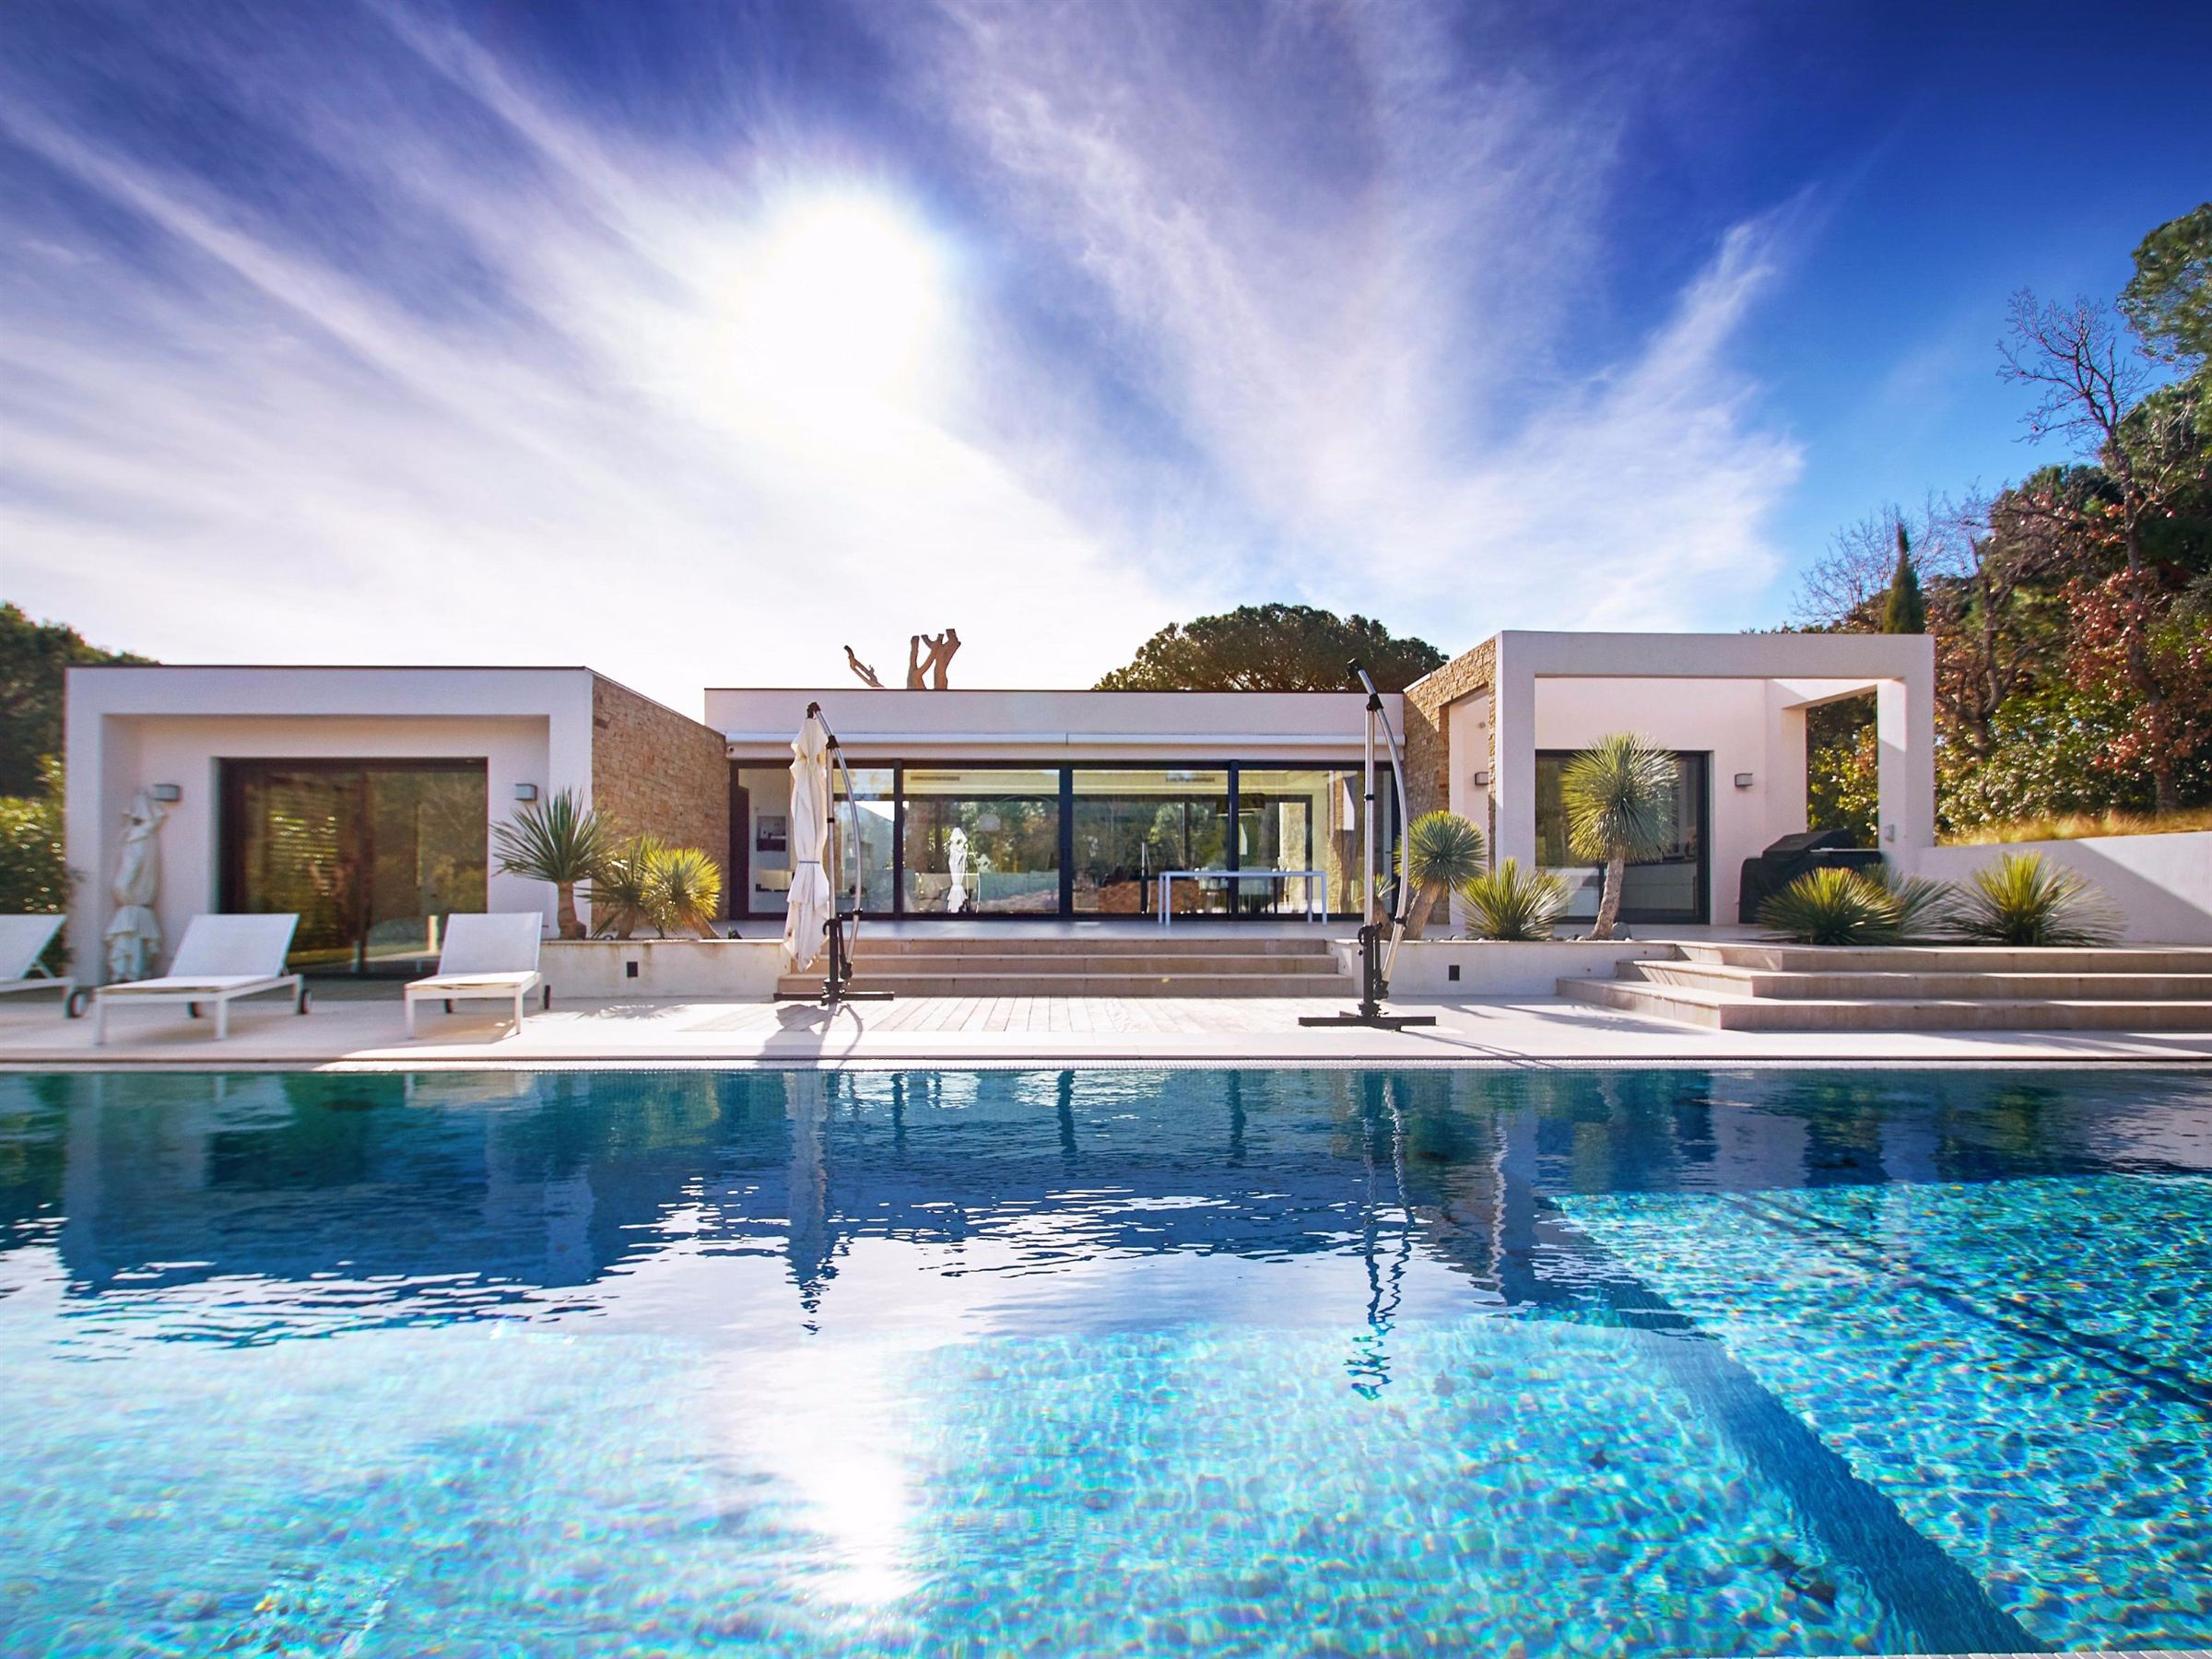 Single Family Home for Sale at Contemporary estate between the village and the beaches Ramatuelle, Provence-Alpes-Cote D'Azur 83350 France